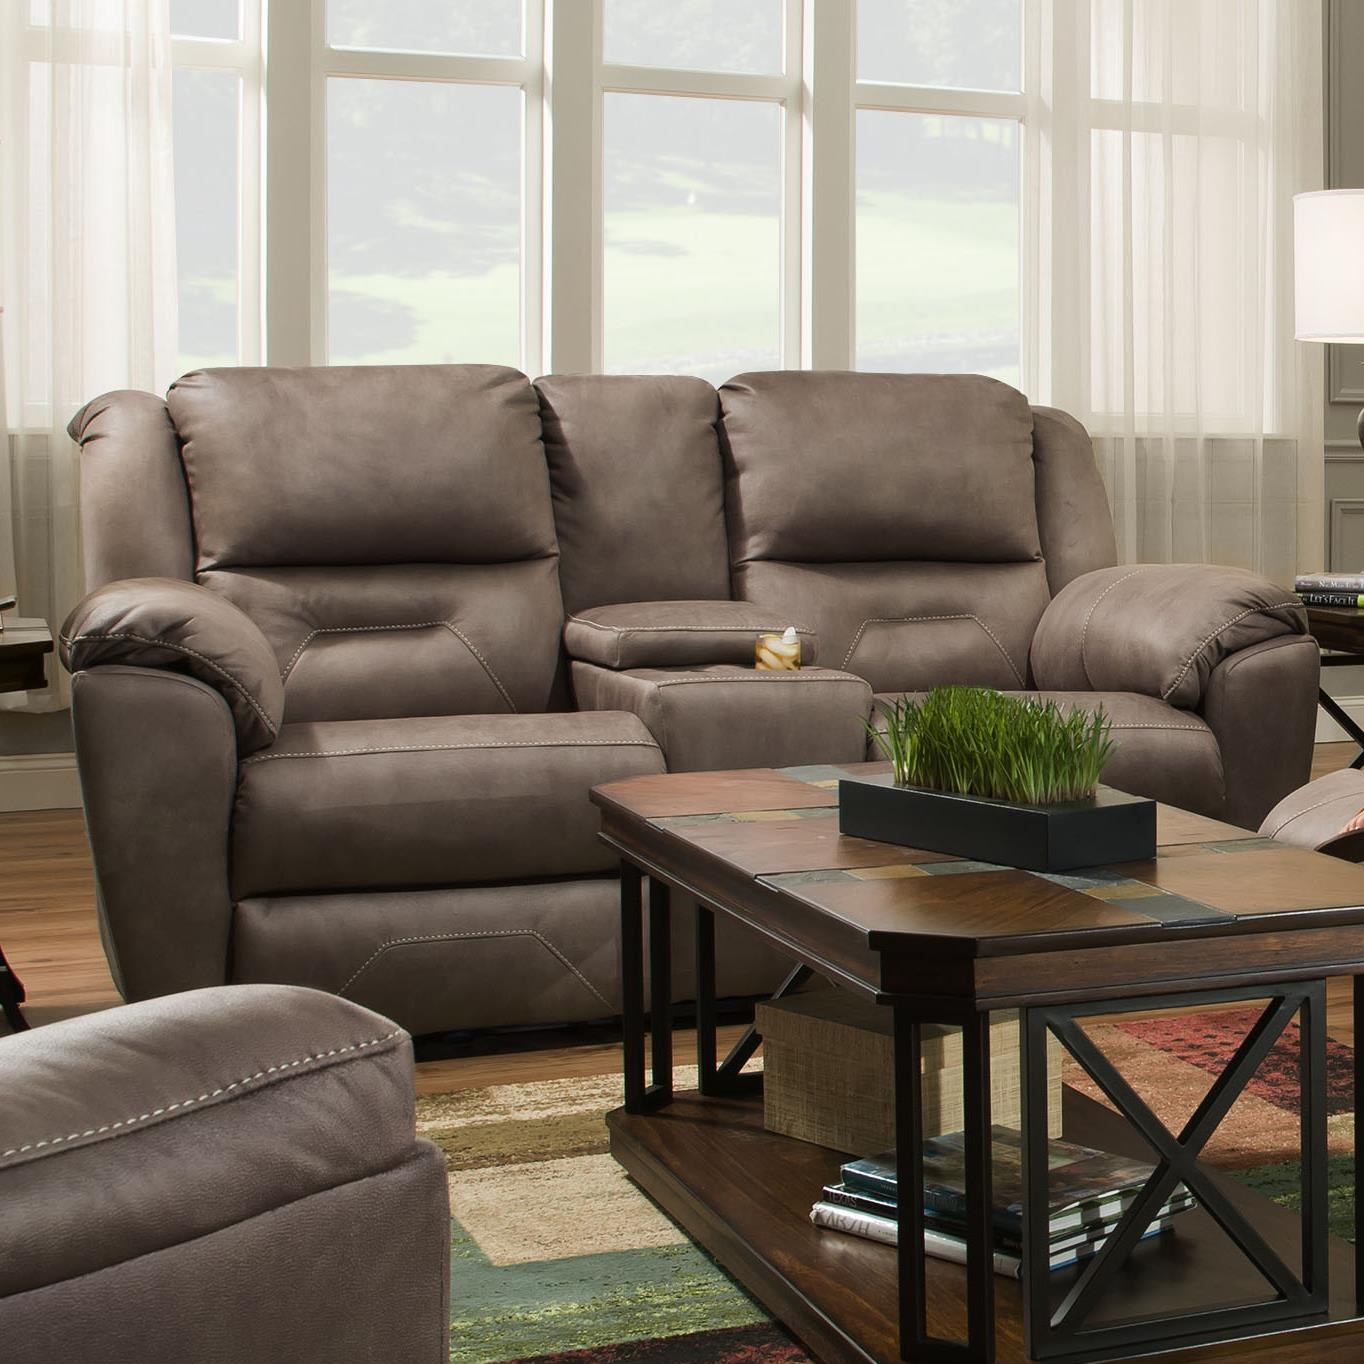 southern motion pandora 751 78p double reclining console sofa with rh dunkandbright com double reclining console sofa reclining sofa console set